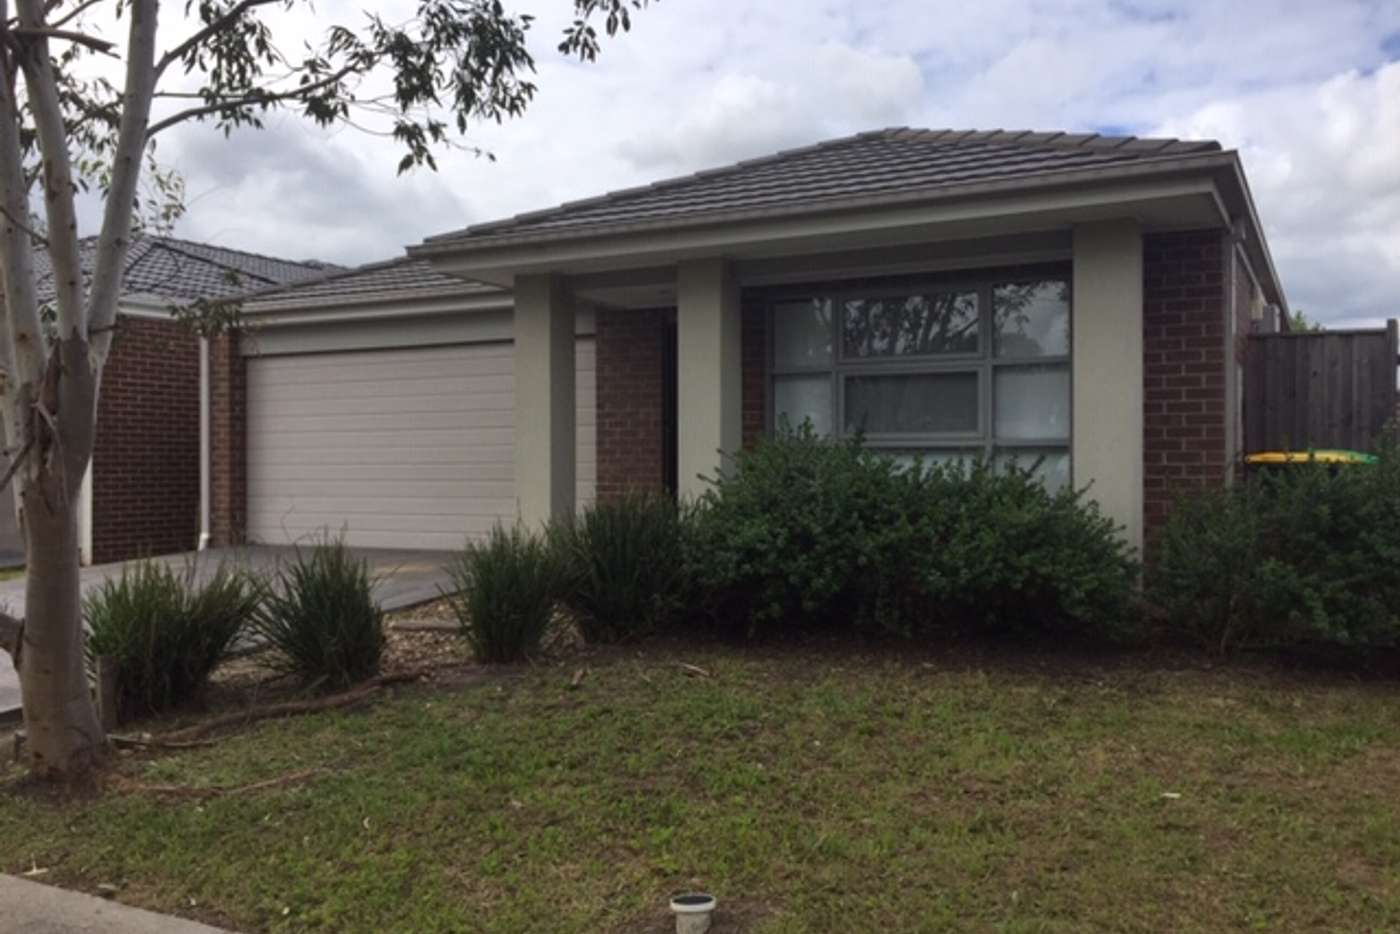 Main view of Homely house listing, 44 Towerhill Avenue, Doreen VIC 3754